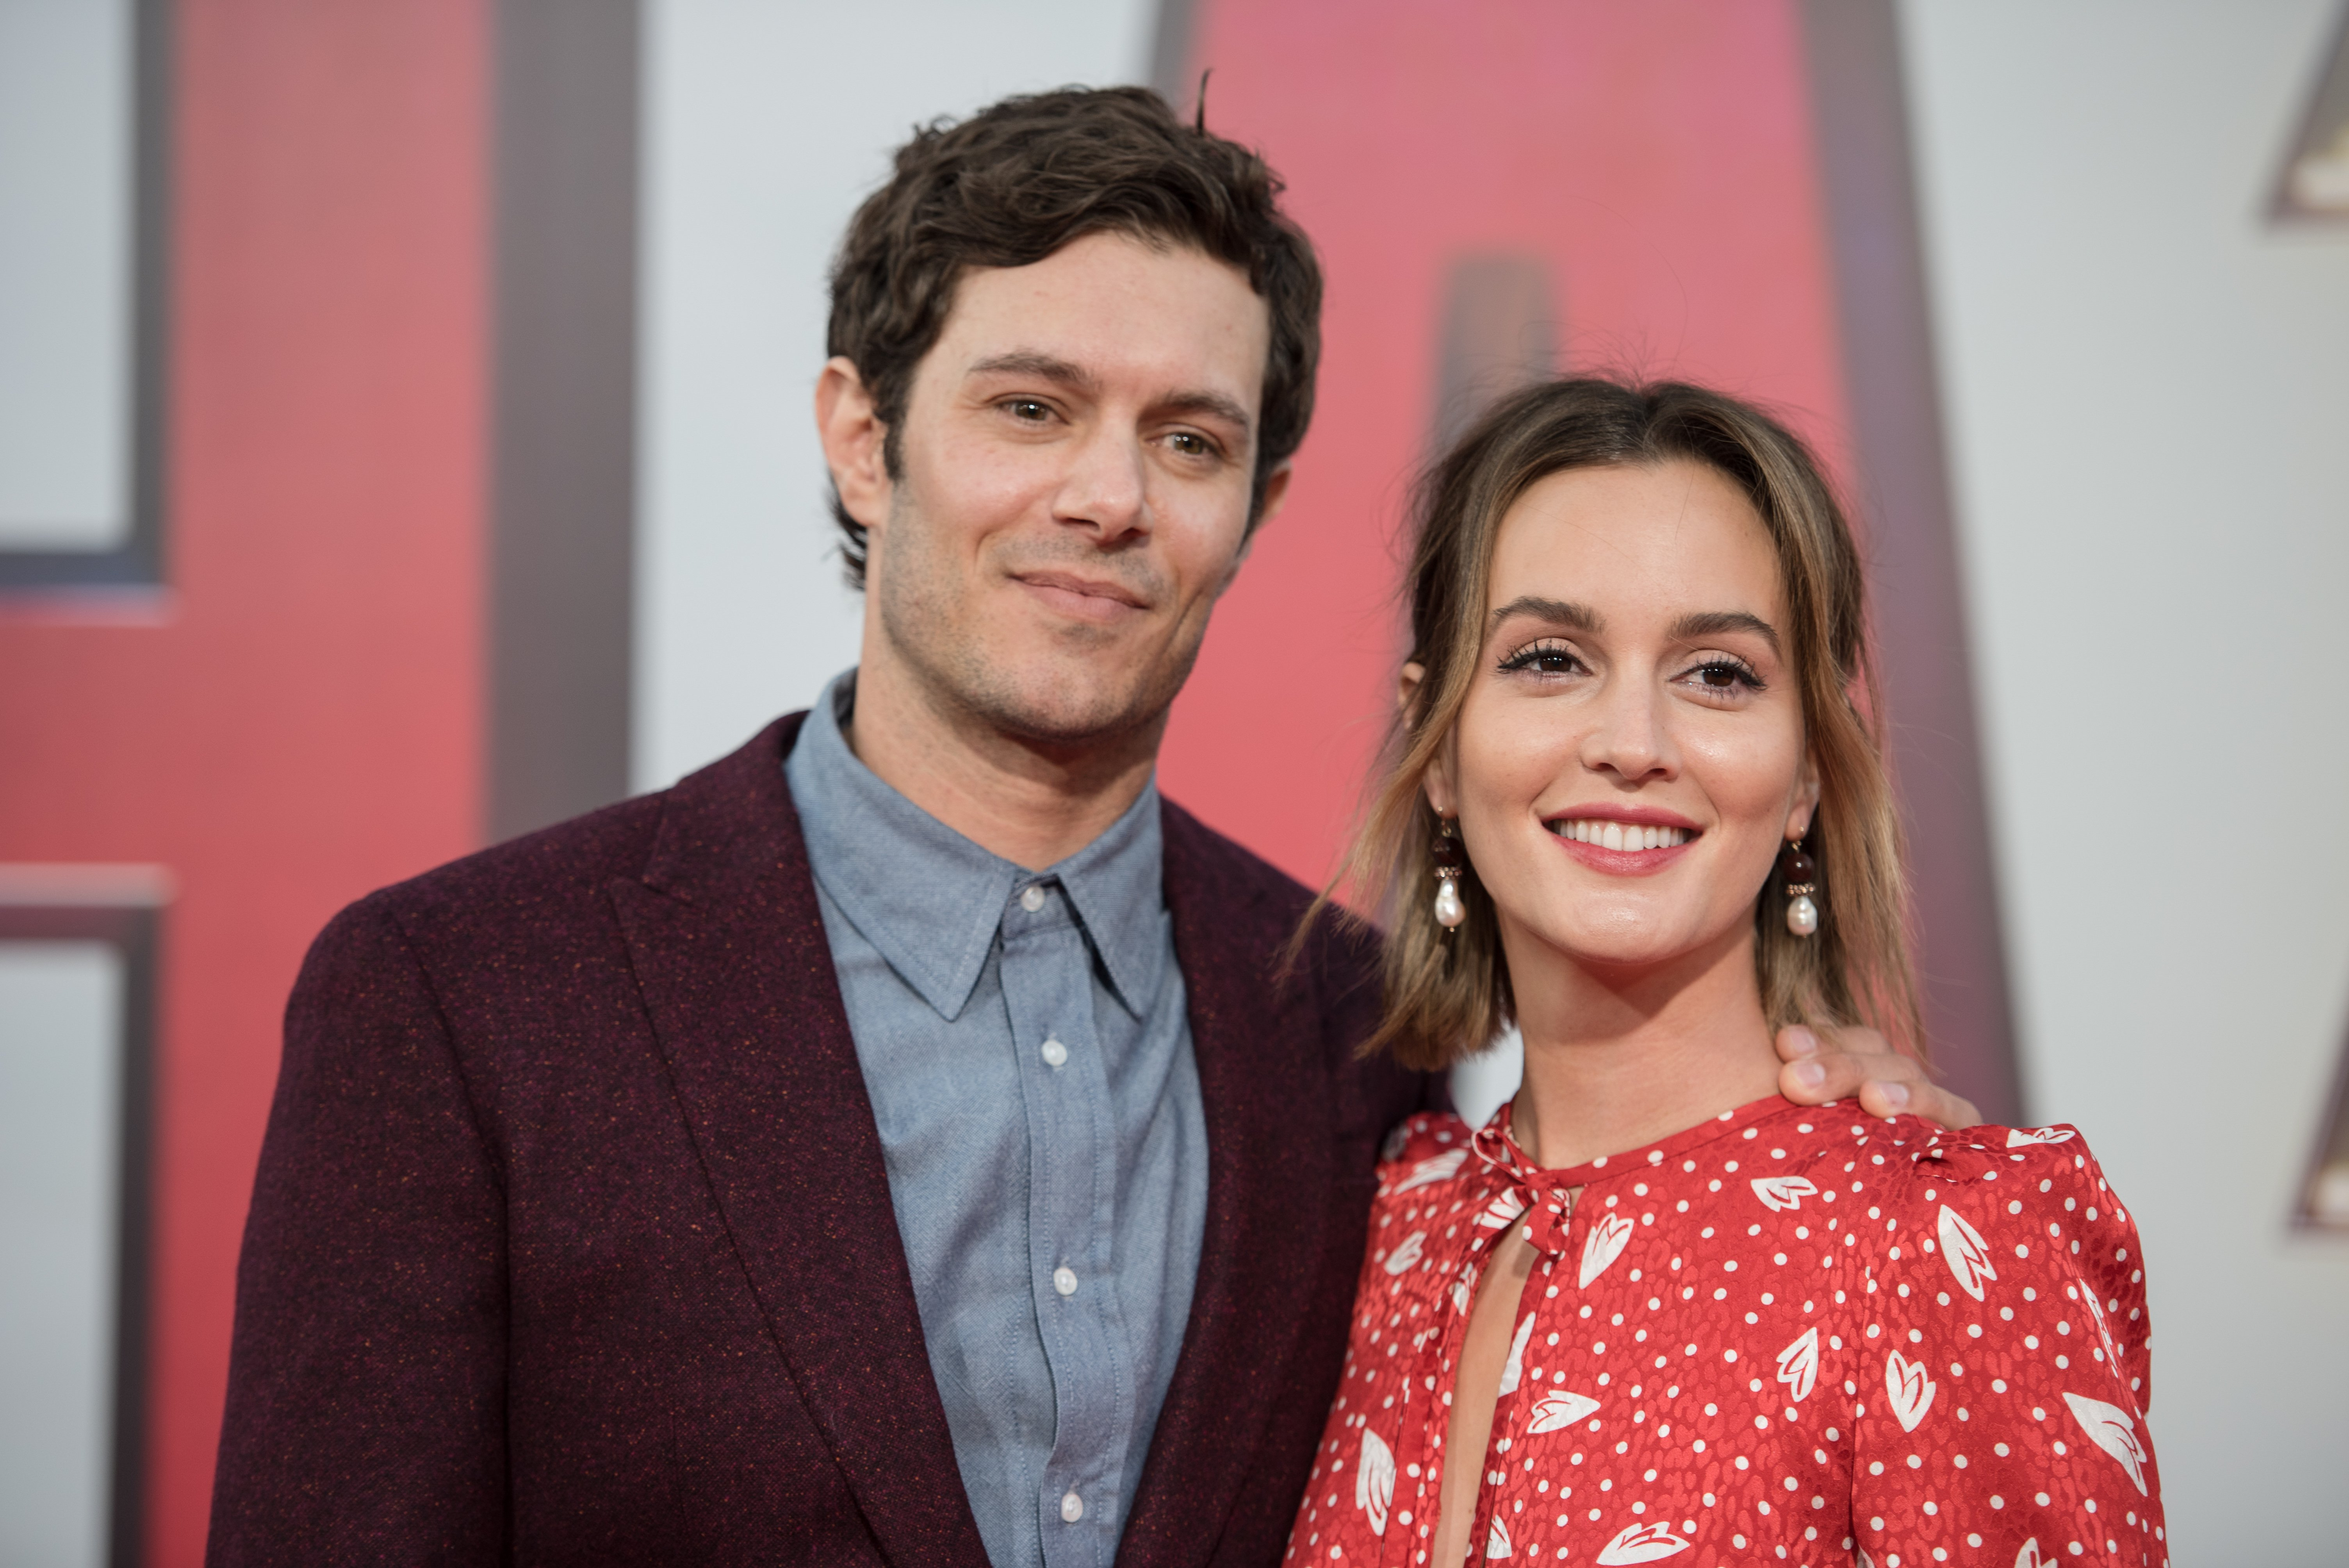 Adam Brody and Leighton Meester at the world premiere of 'Shazam!', March 2019 | Source: Getty Images